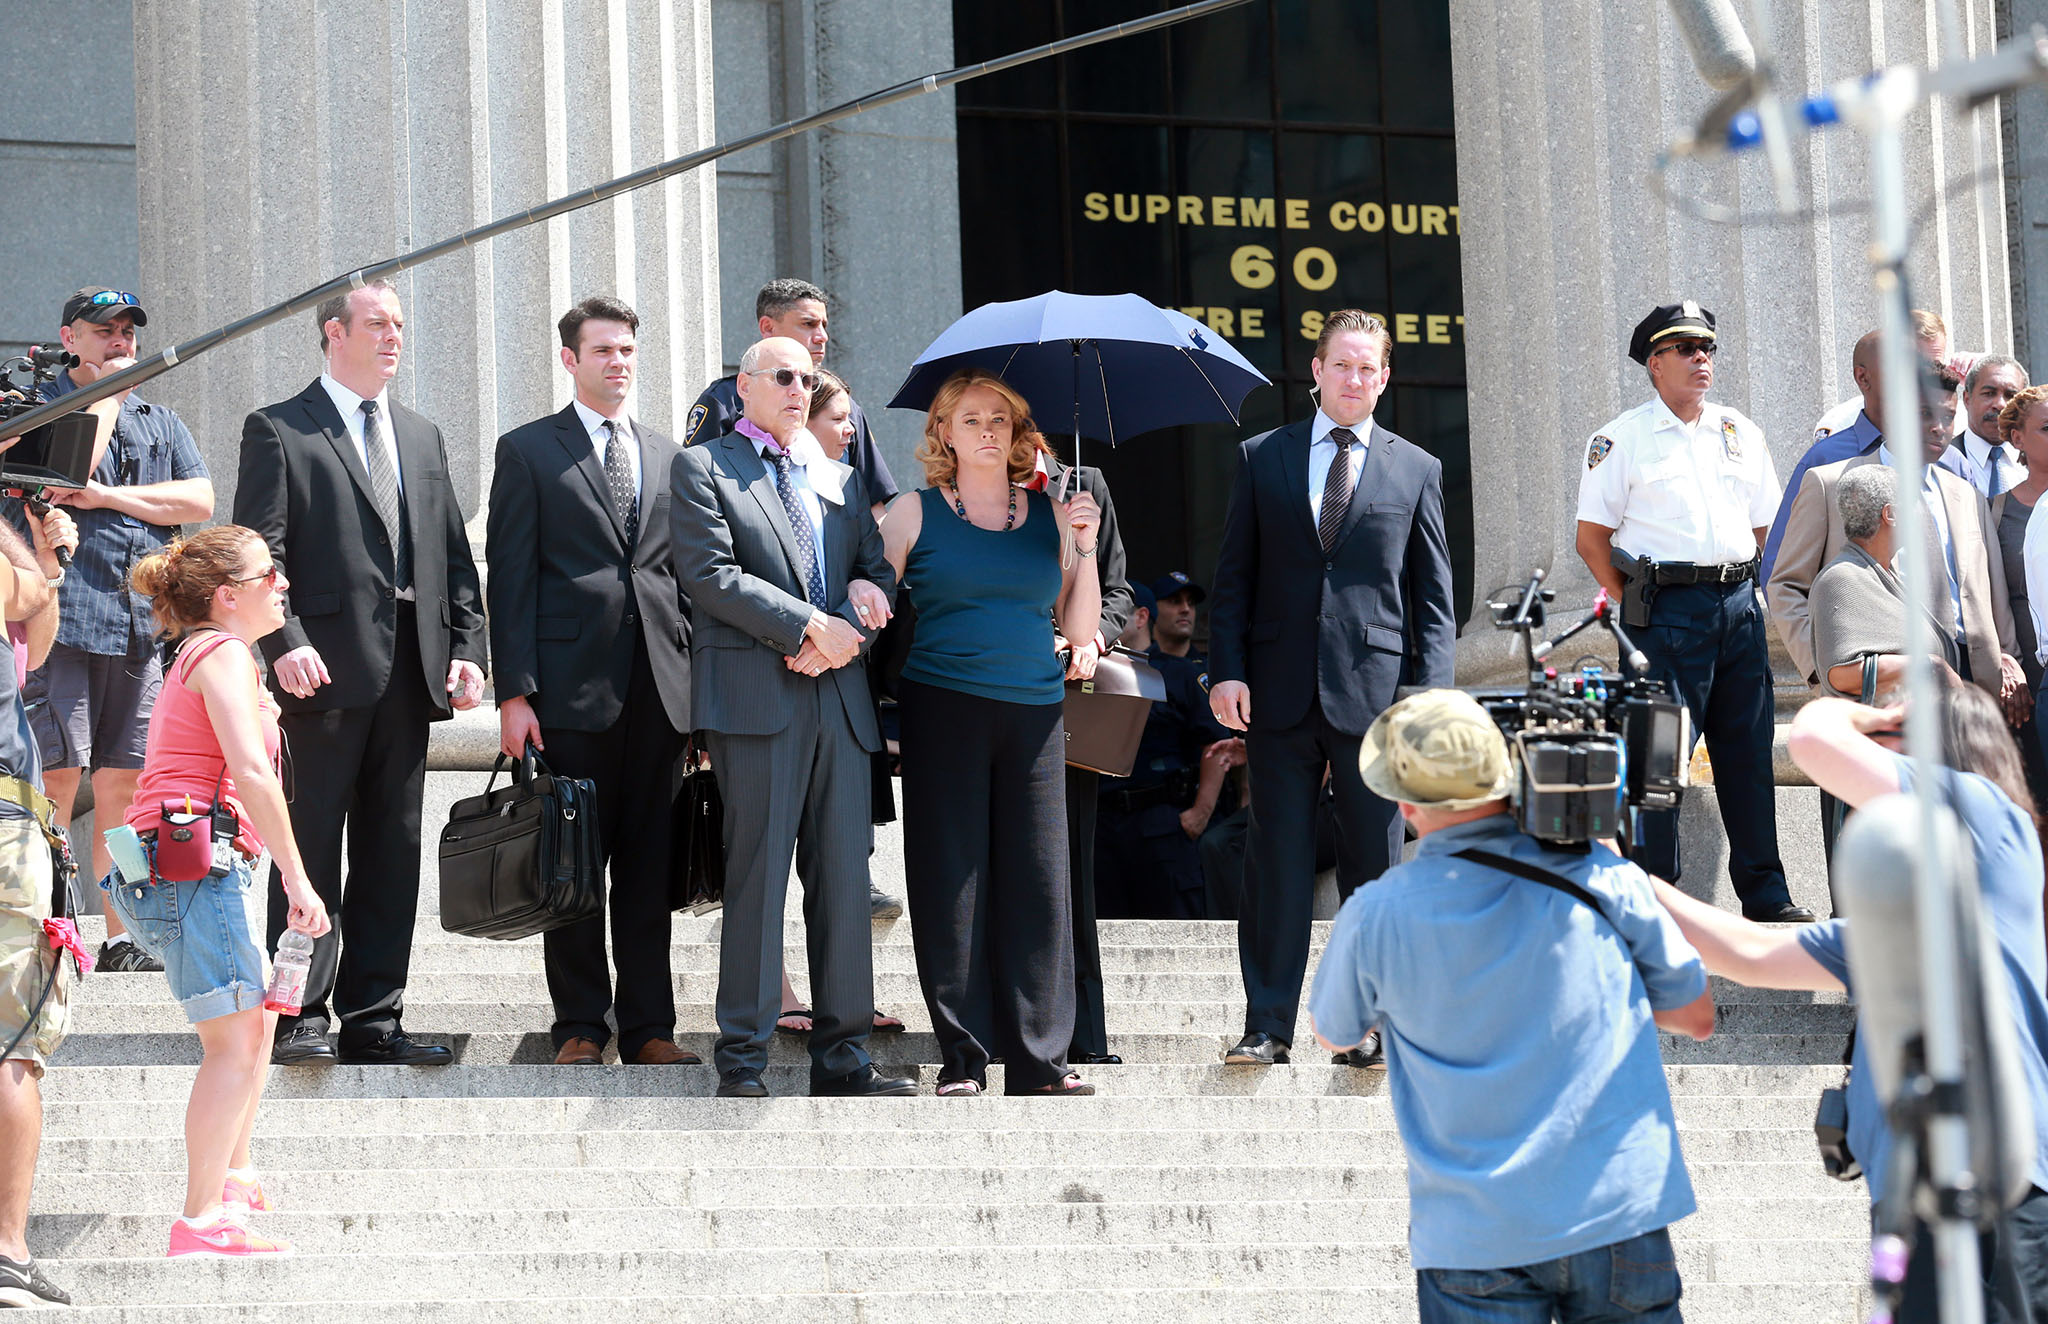 Cybill Shepard (center) filming a scene for 'Law & Order: Special Victims Unit' (Lawrence Schwartzwald/Splash News)